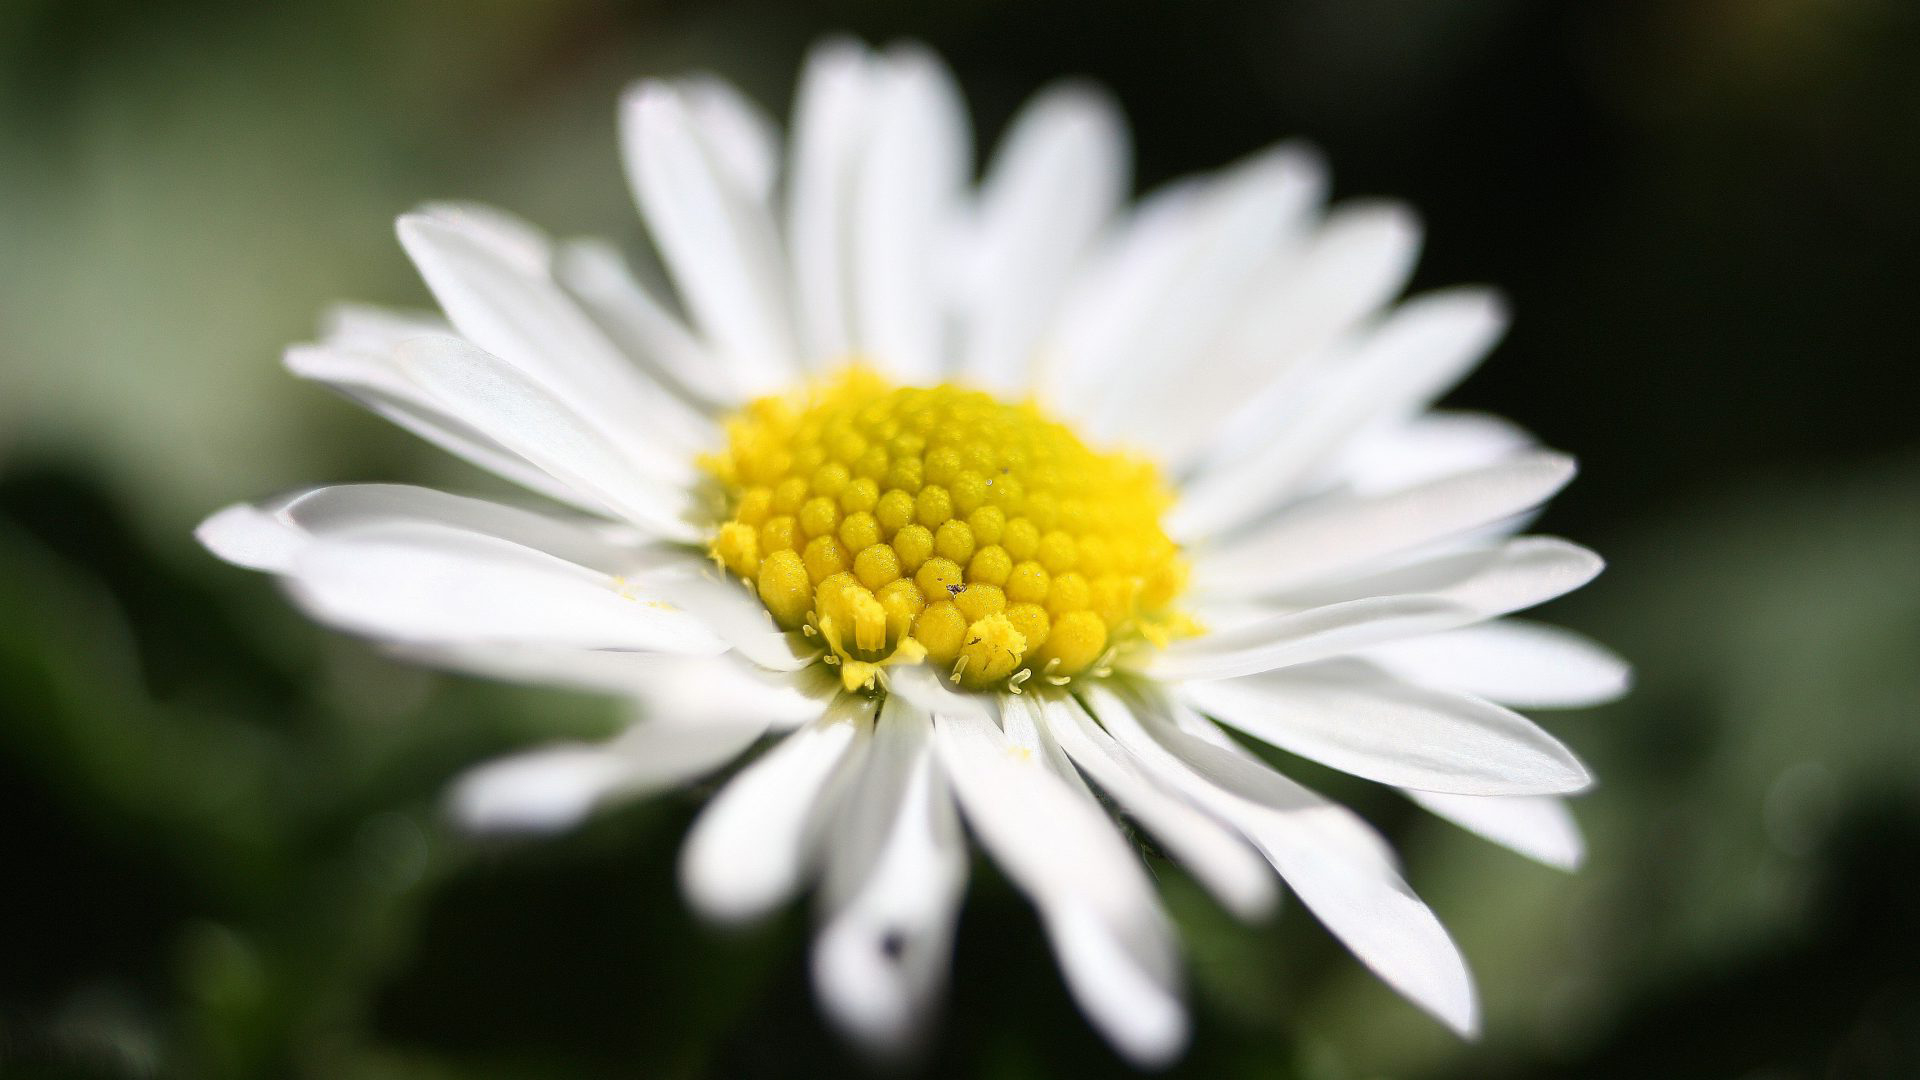 Best HD Wallpapers for Laptop 1080p with White Daisy Images | Best